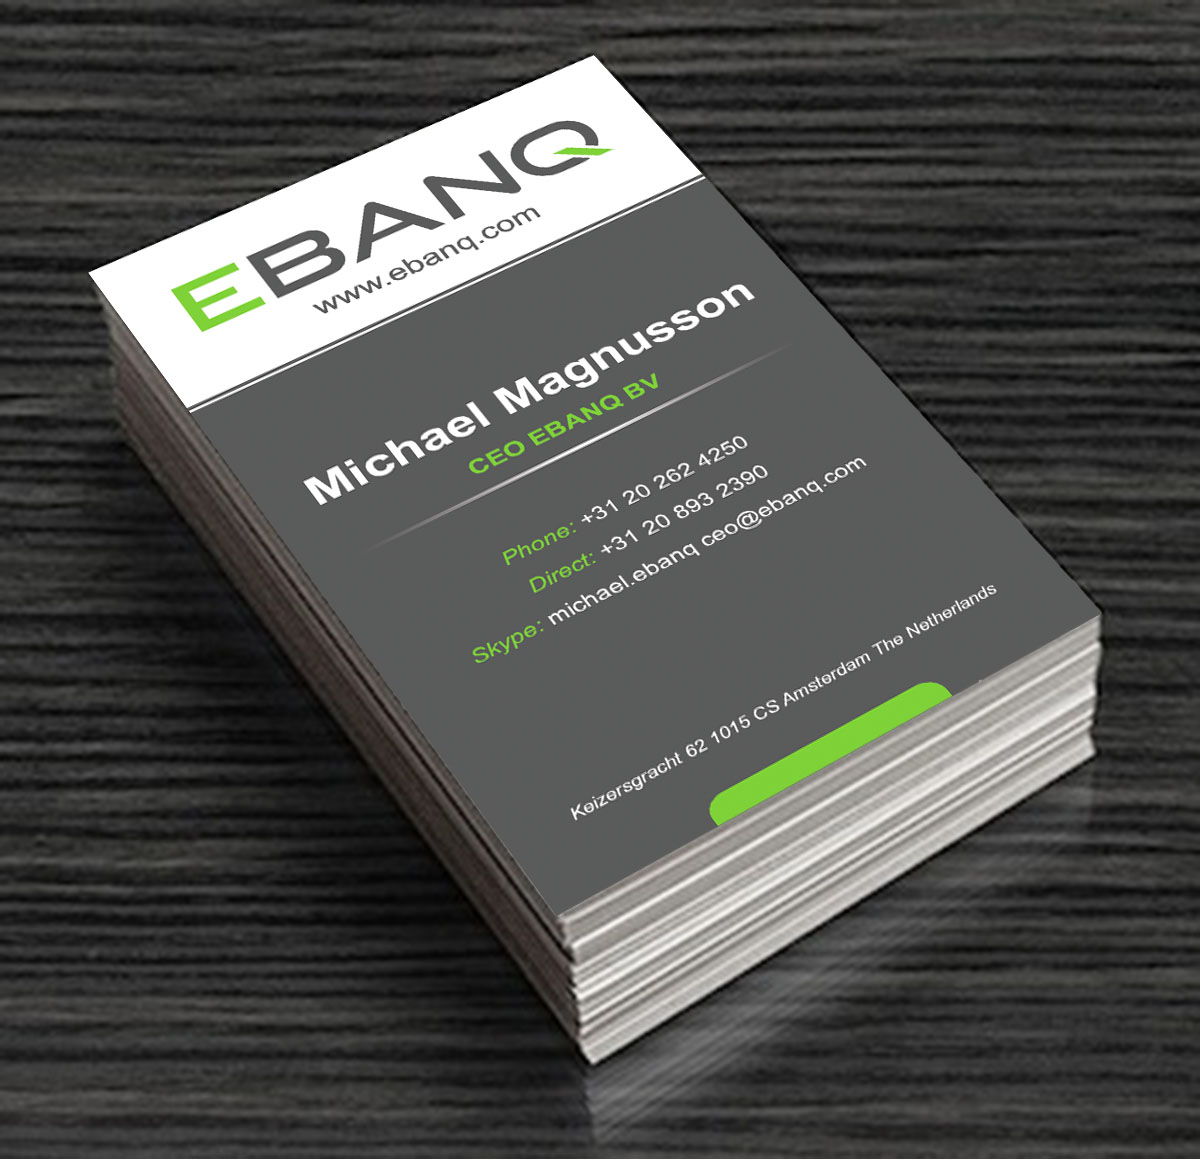 Modern professional financial business card design for ebanq business card design by laurence n corpuz for ebanq fintech sl design 5104239 reheart Image collections